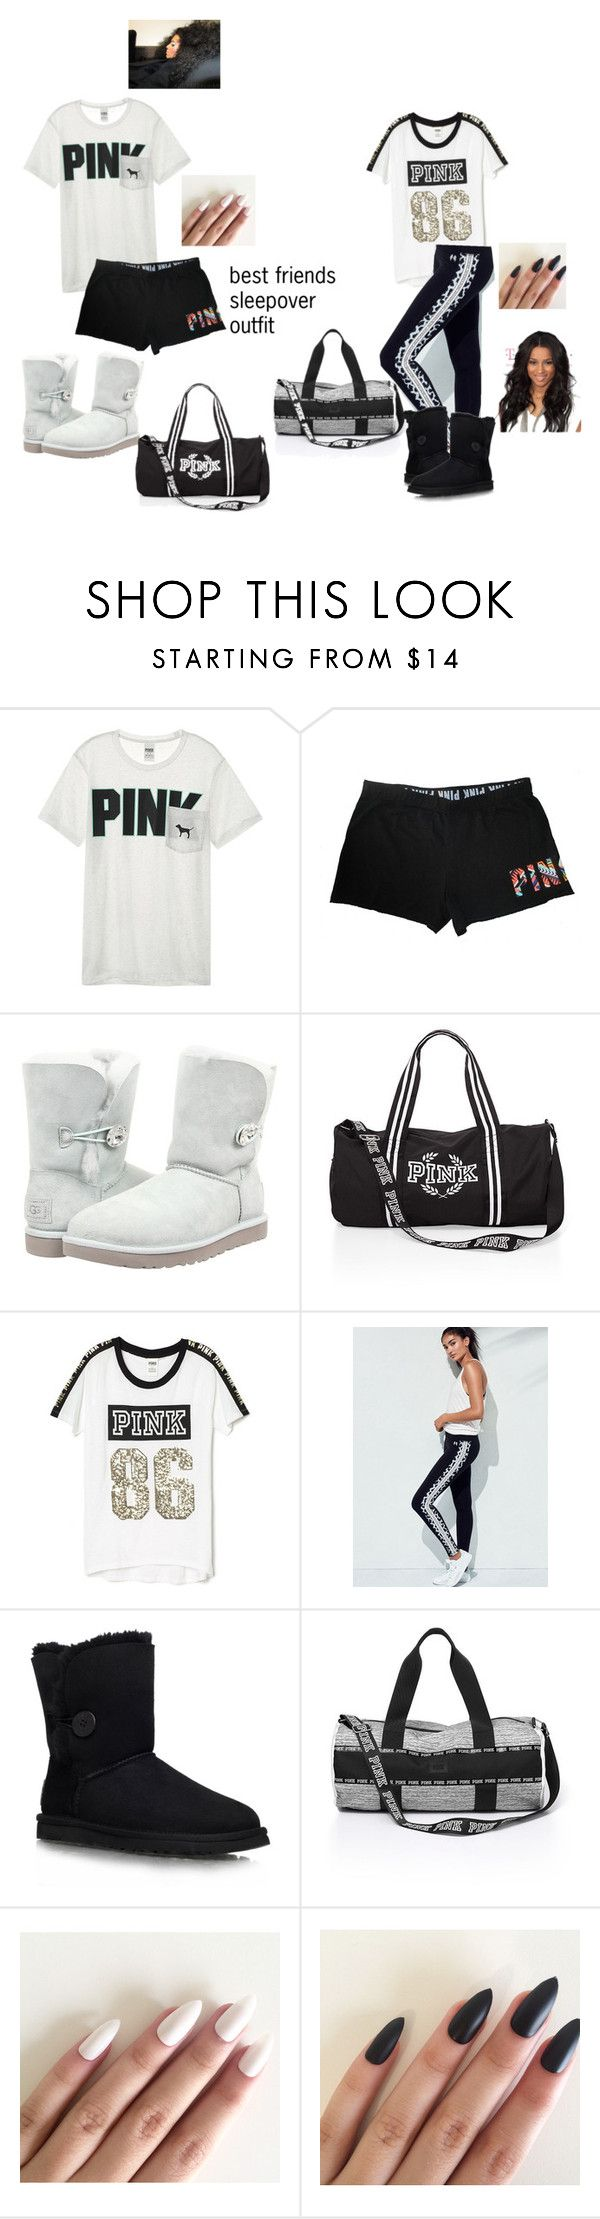 """victoria secret sleepover outfit"" by dopeswalit on Polyvore featuring Victoria's Secret and UGG Australia"